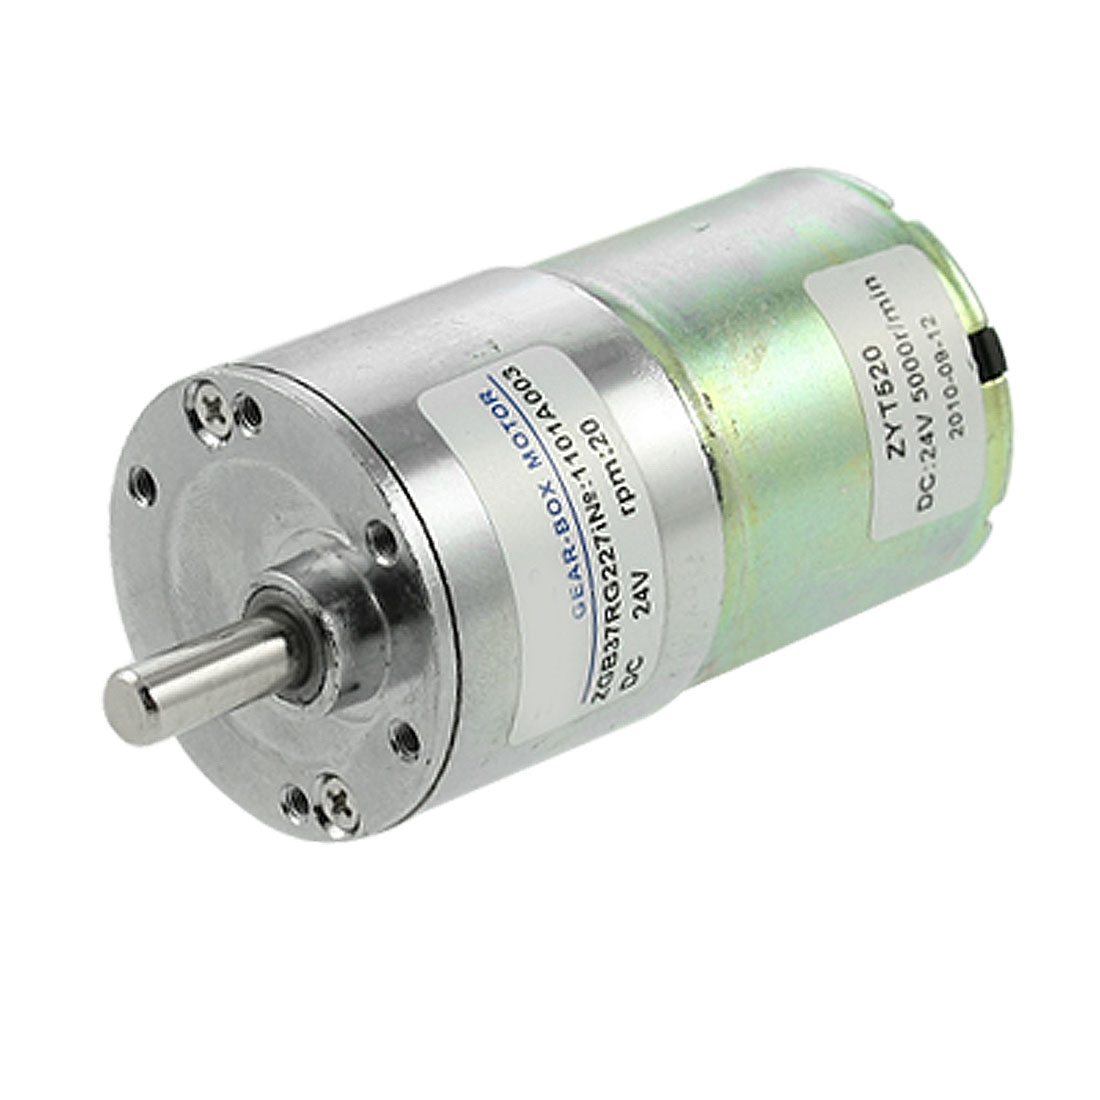 Electric-37mm-Gearbox-Dia-DC-Geared-Motor-0-33A-20RPM-24V